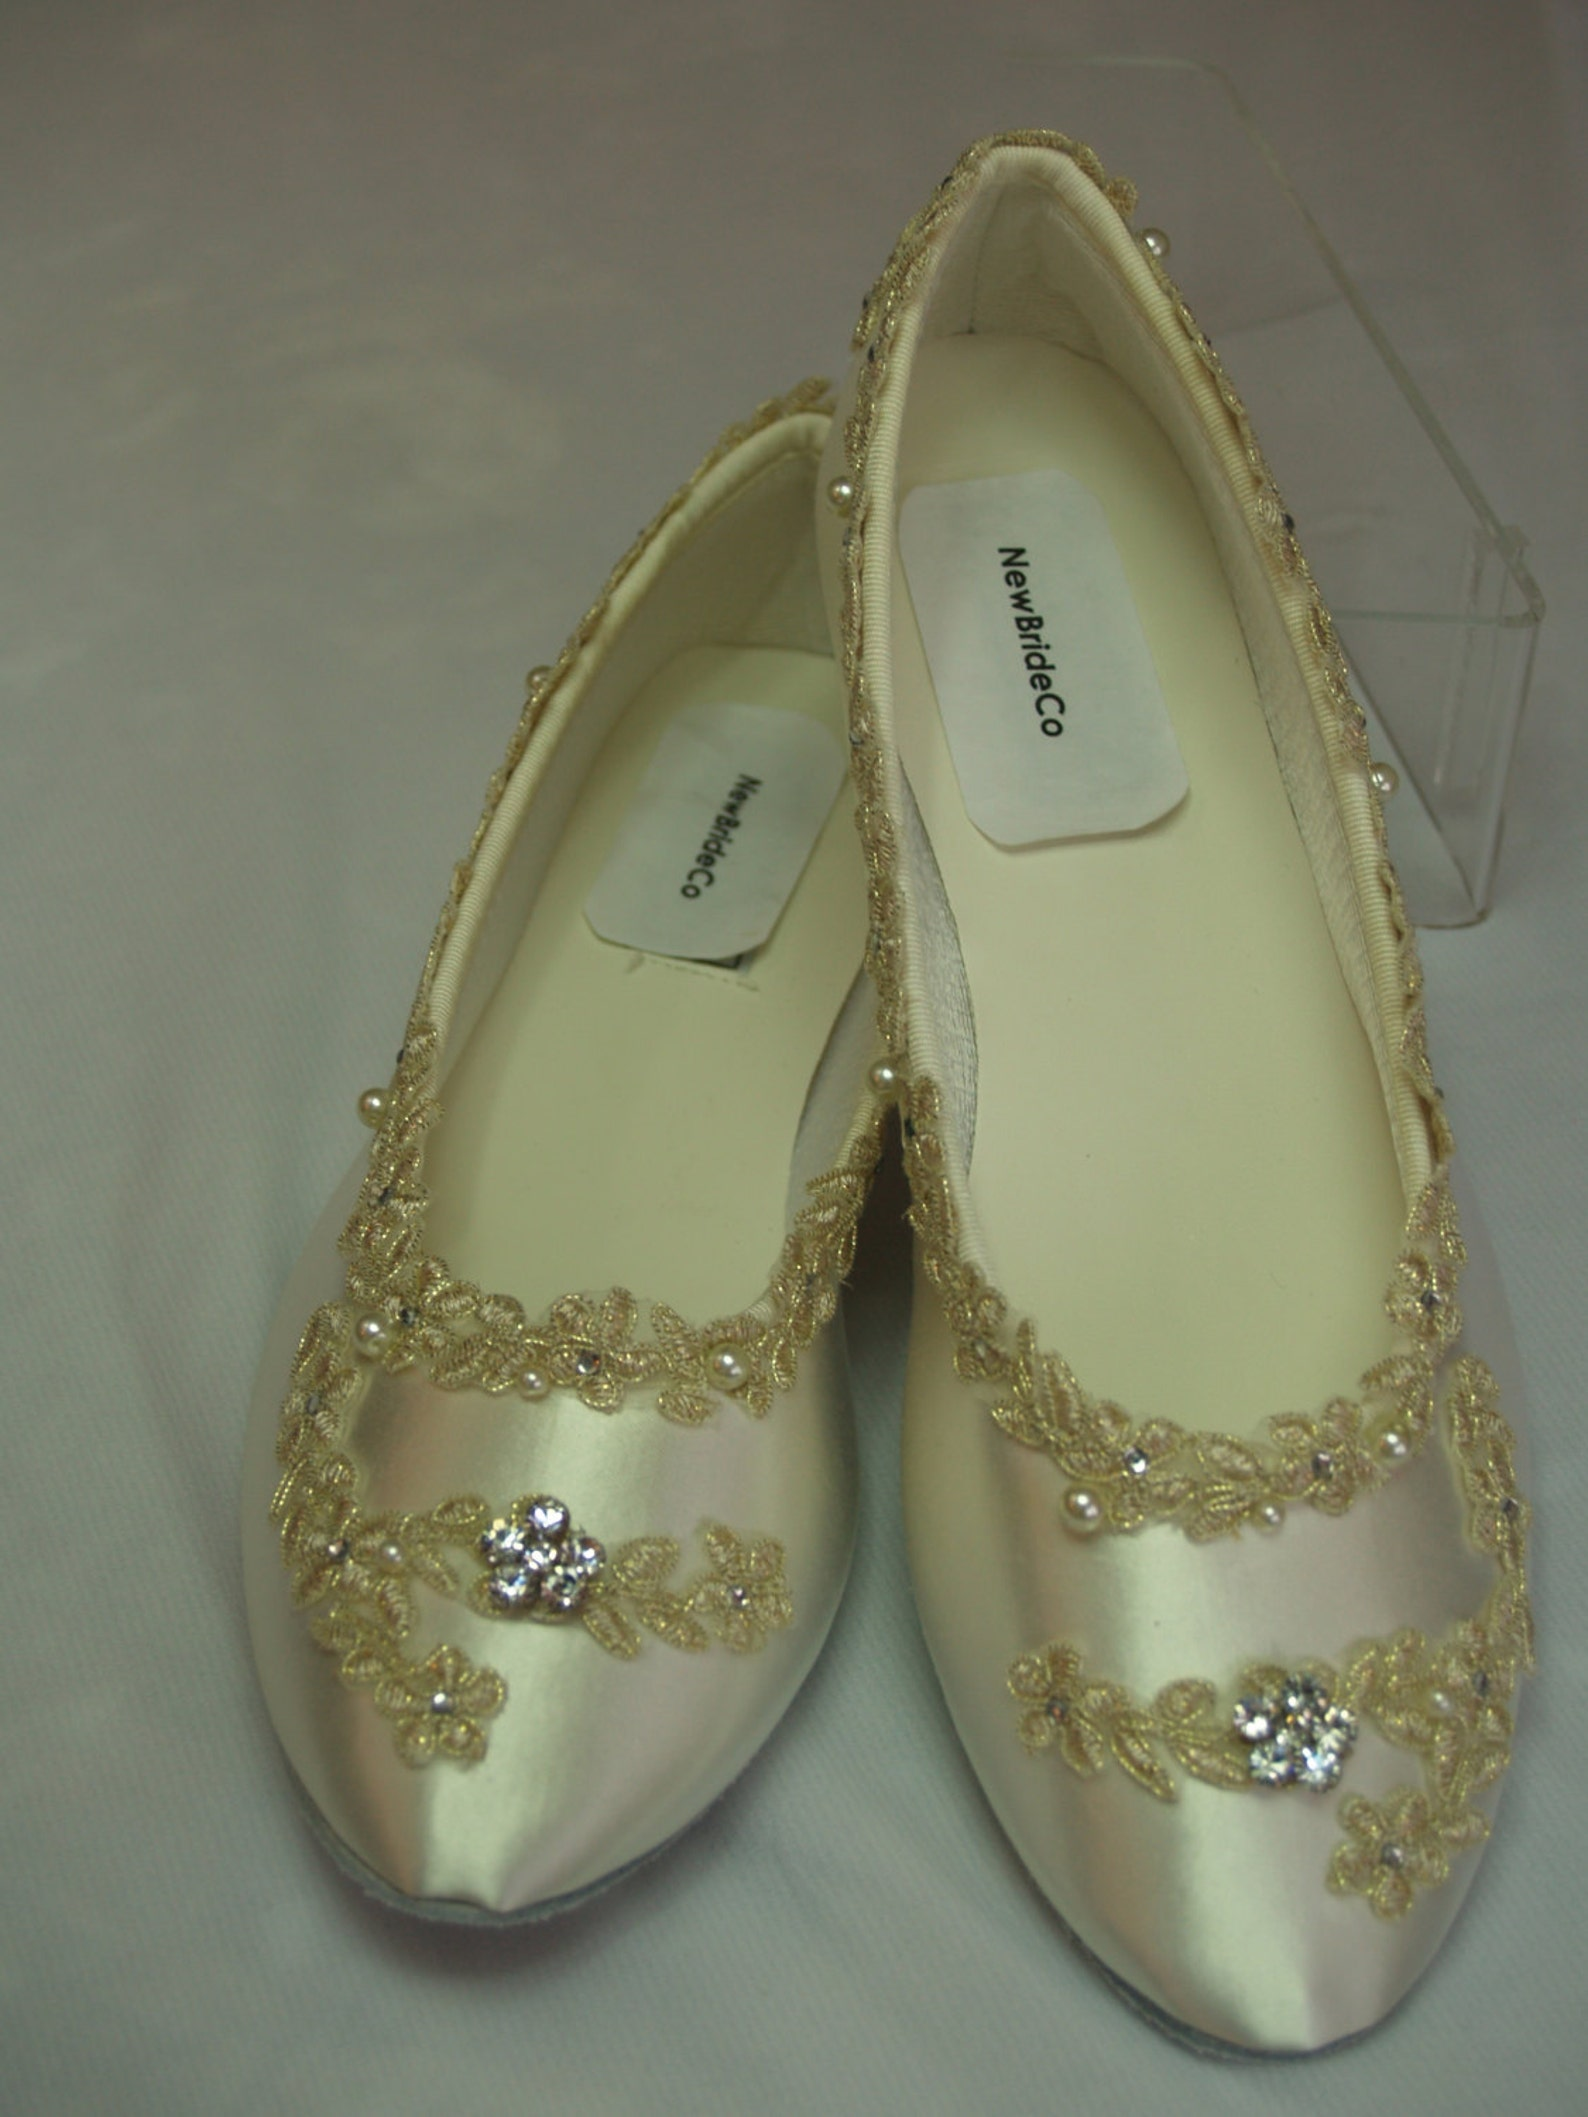 size 8 1/2 flats ivory w/ gold lace applique, wedding in ivory, ballet style slippers, flat closed toe shoes, victorian, gatsby